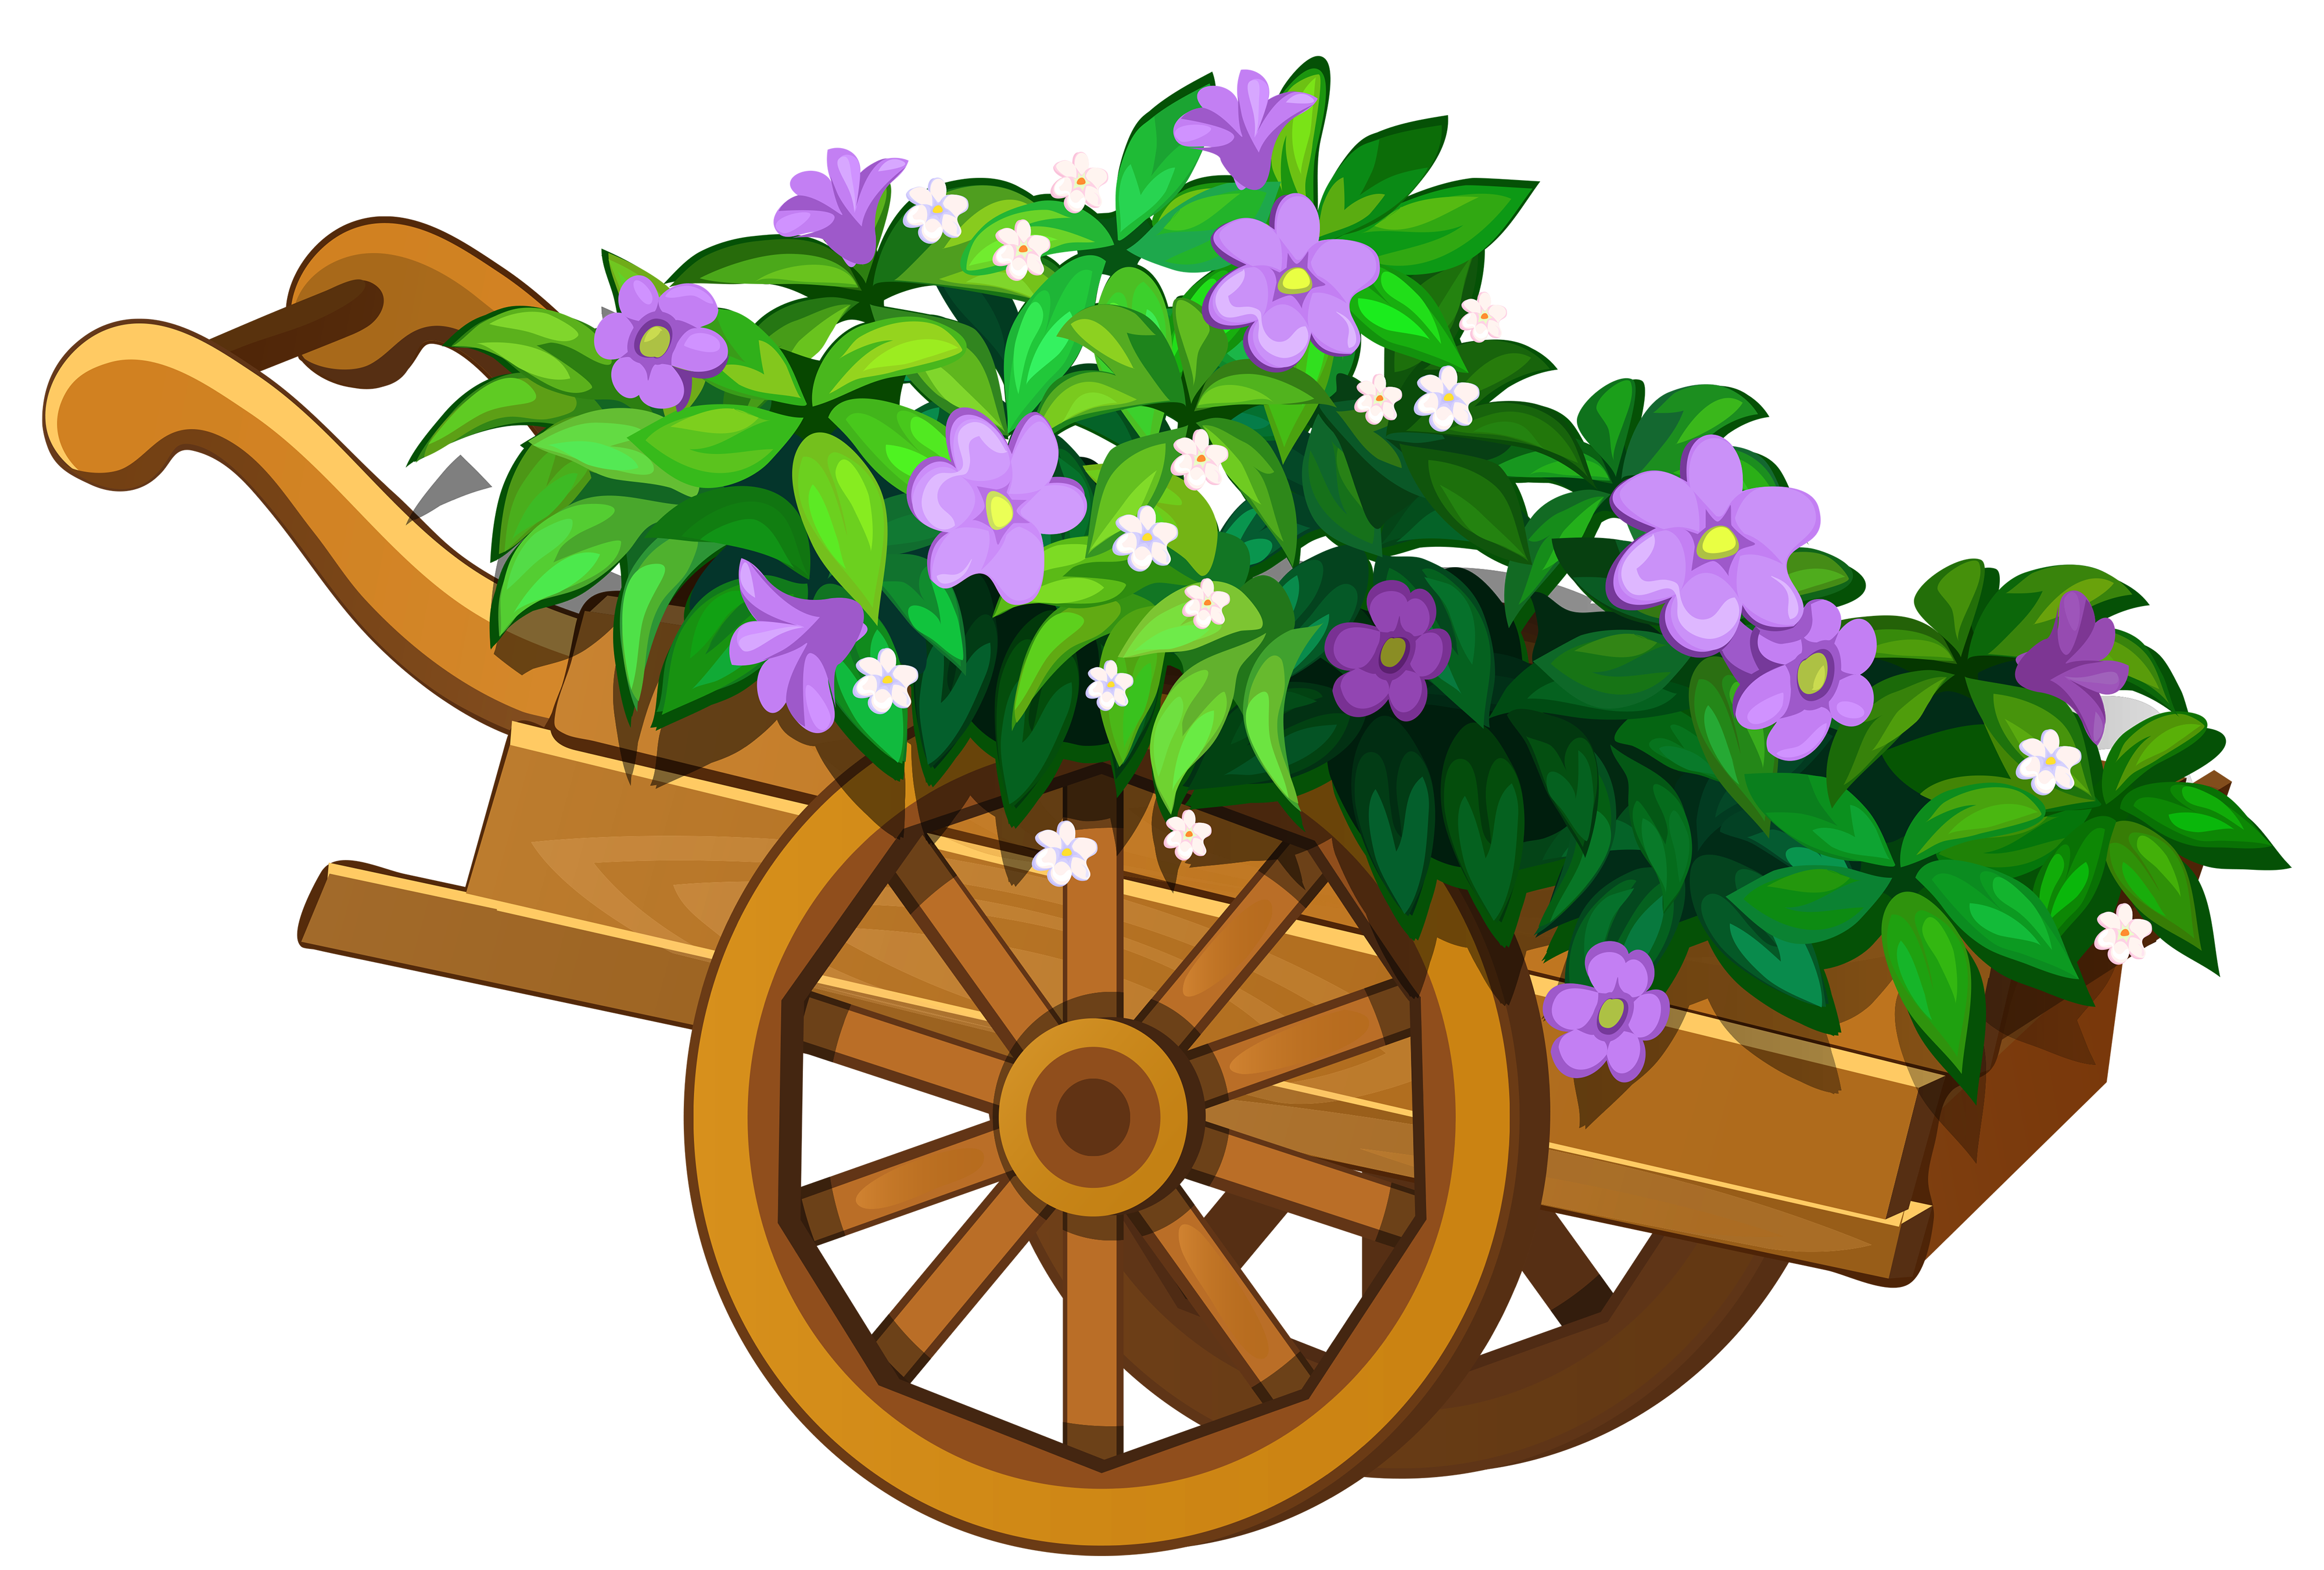 Flower bed clipart clipart freeuse download Wooden Garden Wheelbarrow with Flowers PNG Clipart the garden ... clipart freeuse download